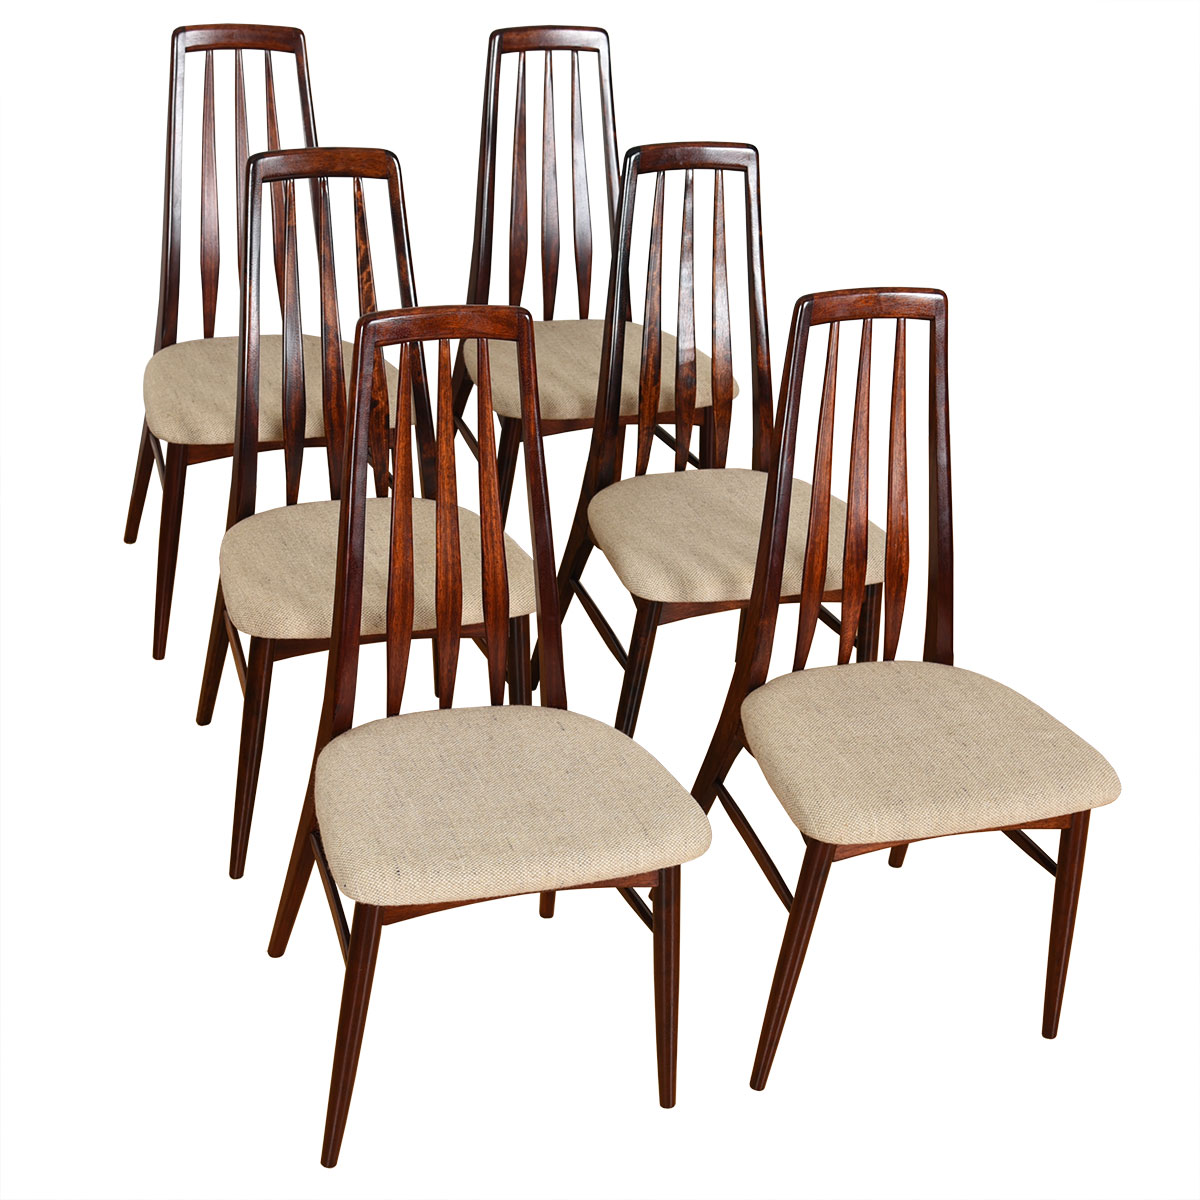 Set of 6 Danish Rosewood Dining Chairs by Koefoeds Hornslet